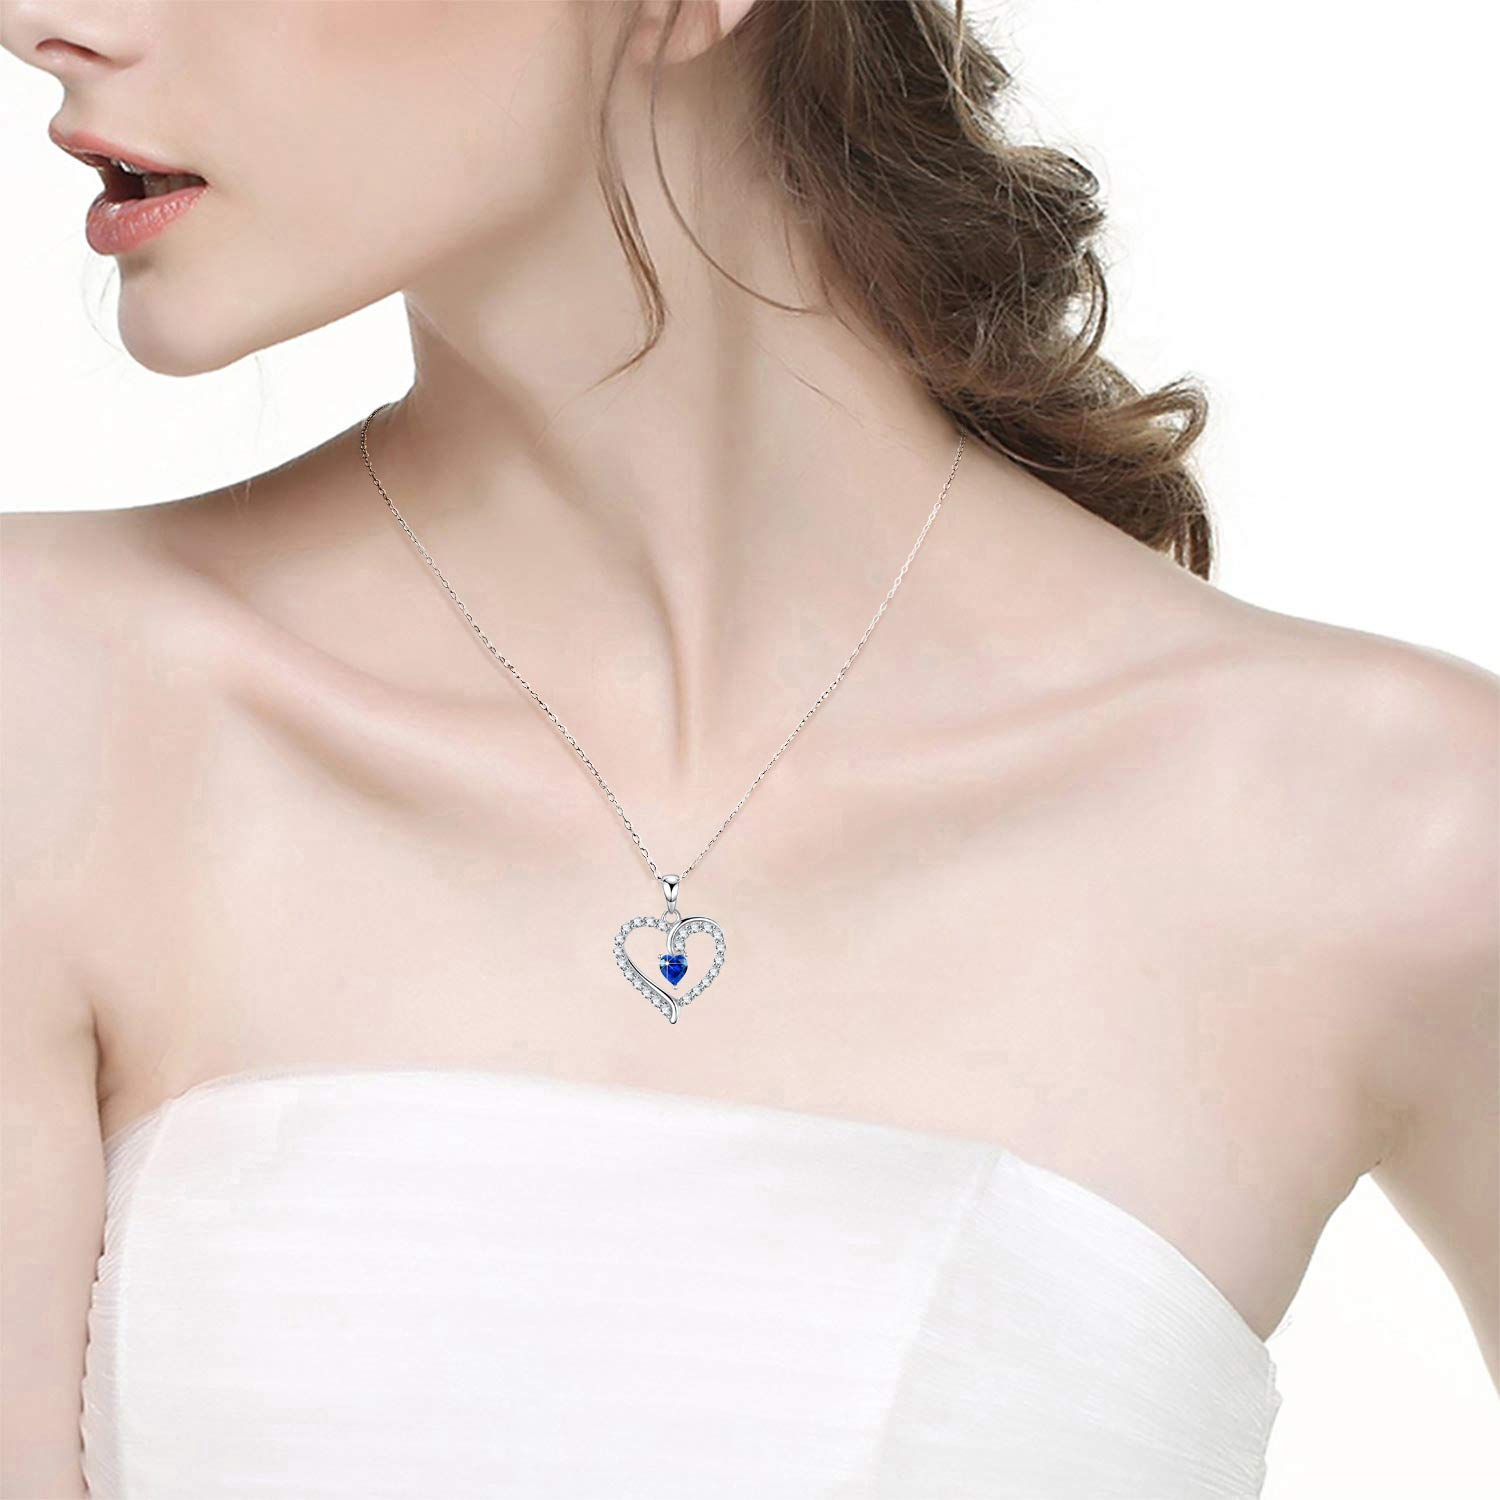 September Birthstone ❤️ You are The Only One ❤️ Love Heart Pendant Necklace for Wife Created Blue Sapphire Fine Jewelry Birthday for Women Her Girlfriend Daughter Sterling Silver by Dorella (Image #4)